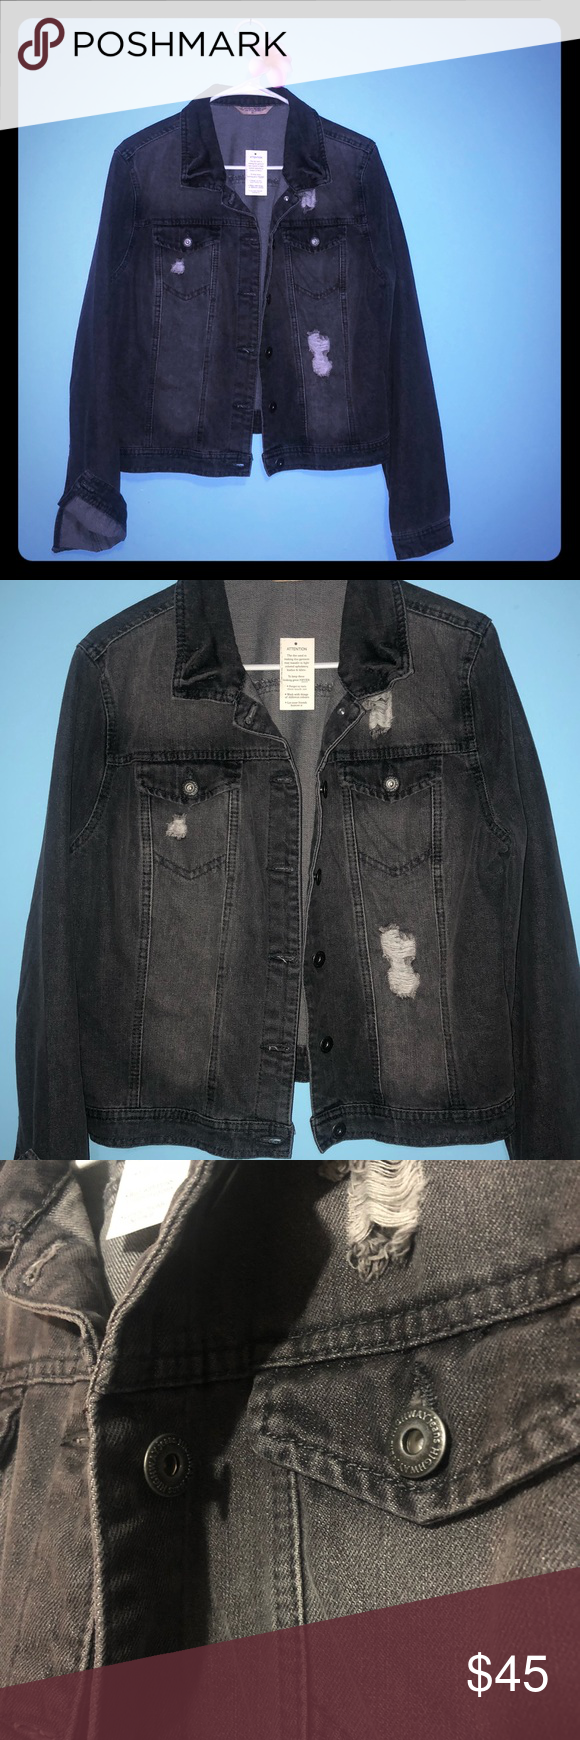 Dark Gray Distressed Denim Jacket Juniors Xl New With Tags Partially One Tag Is Attached But Price Denim Jacket Grey Ripped Jeans Distressed Denim Jacket [ 1740 x 580 Pixel ]